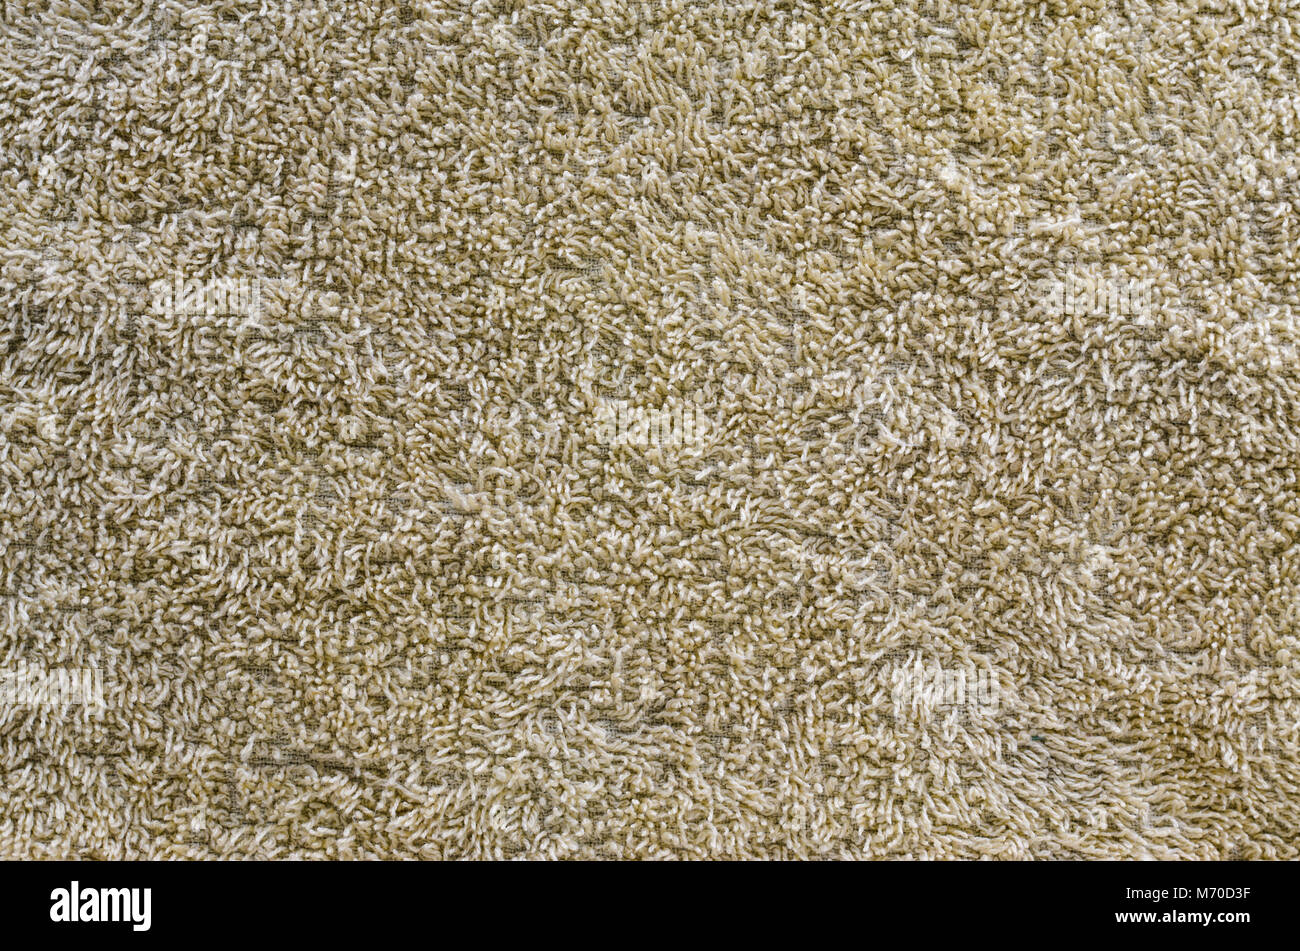 Texture of a brown carpet with long pile. Blank background - Stock Image